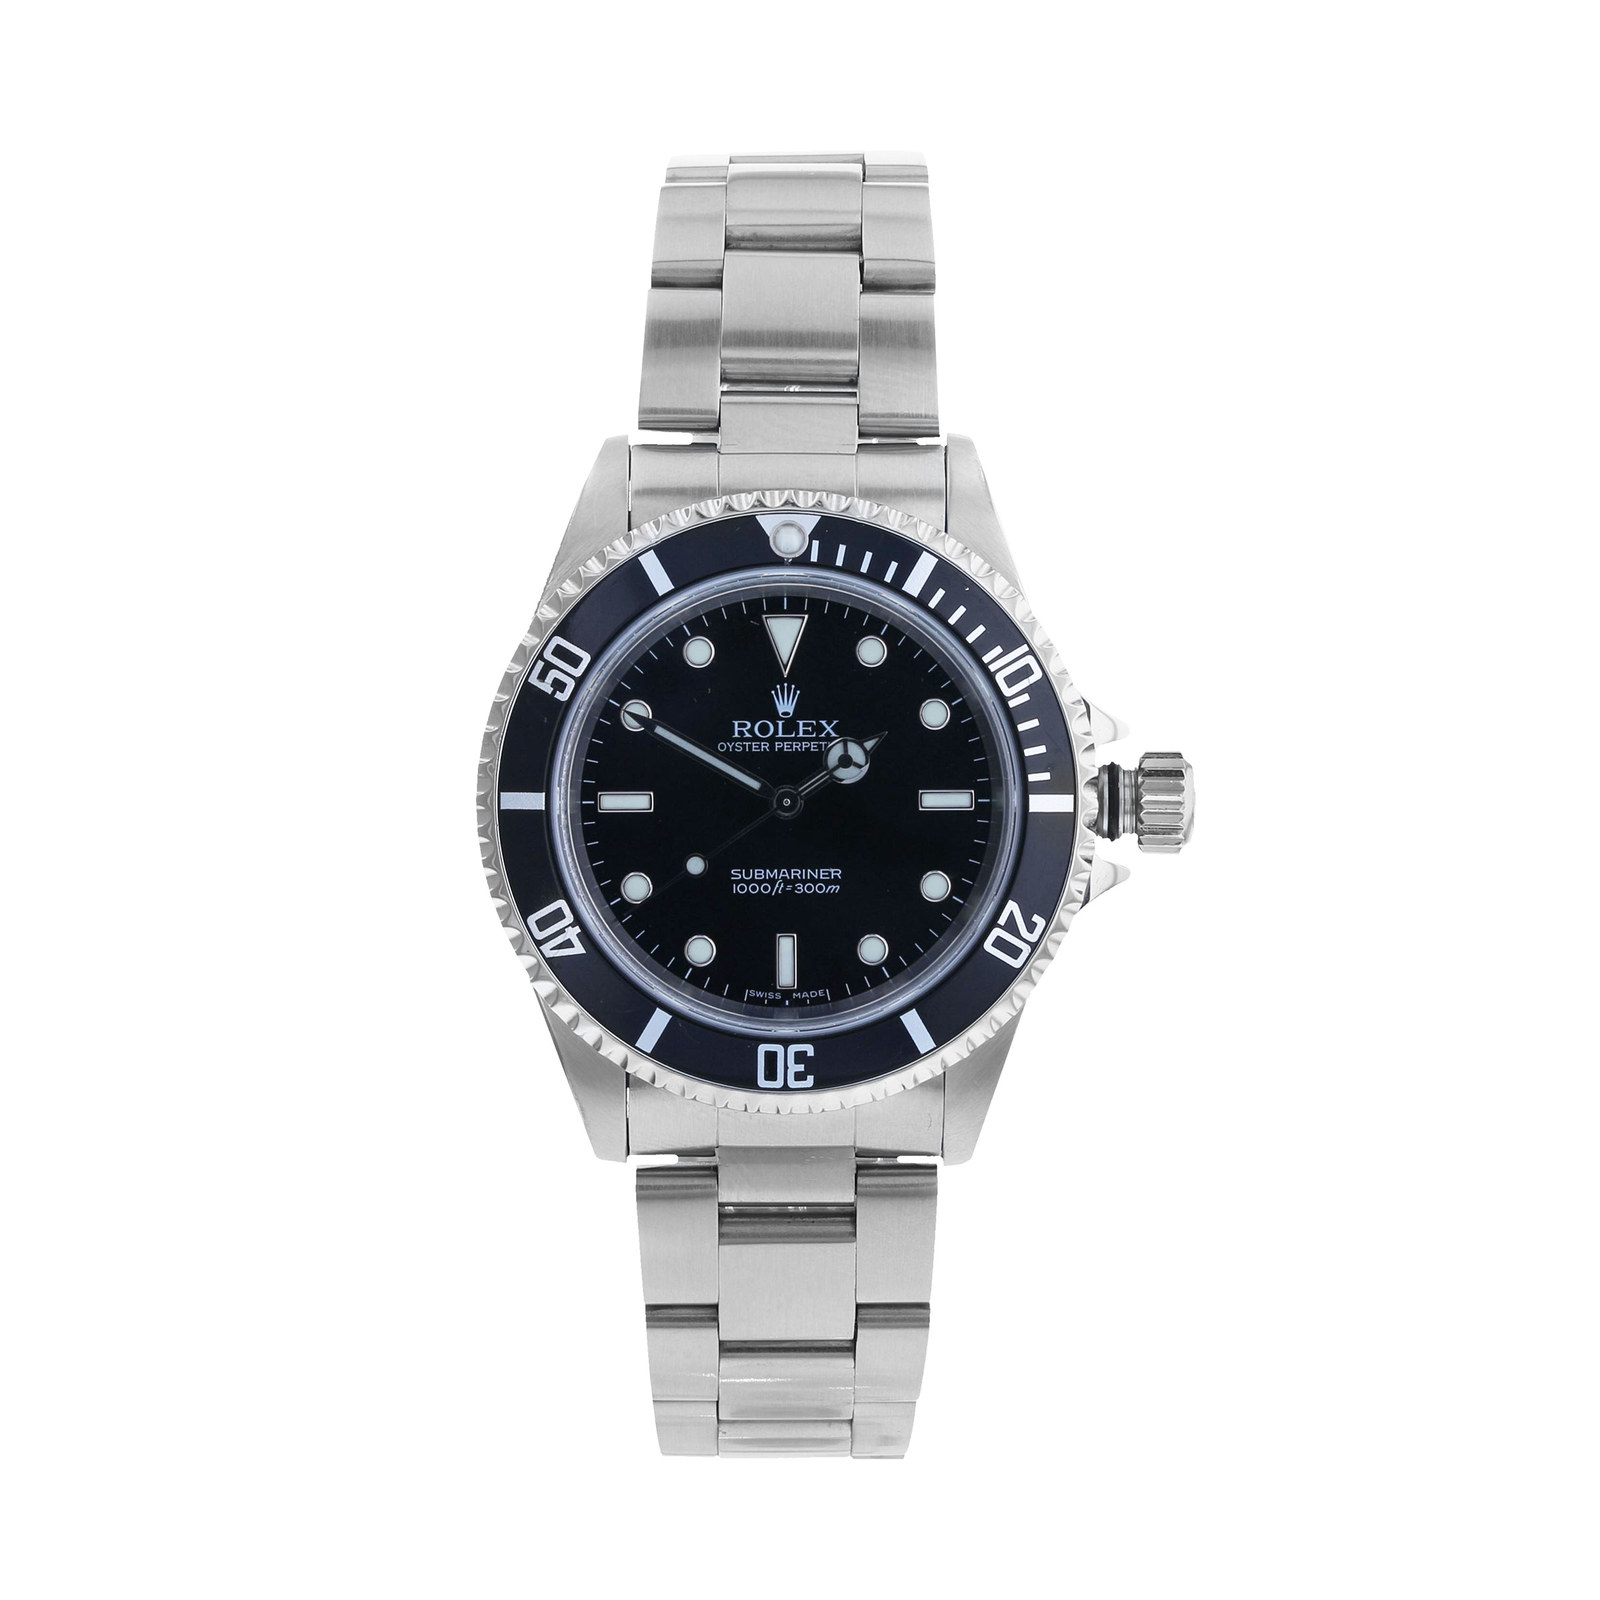 Pre-Owned Rolex Submariner Men's Watch, Circa 2005